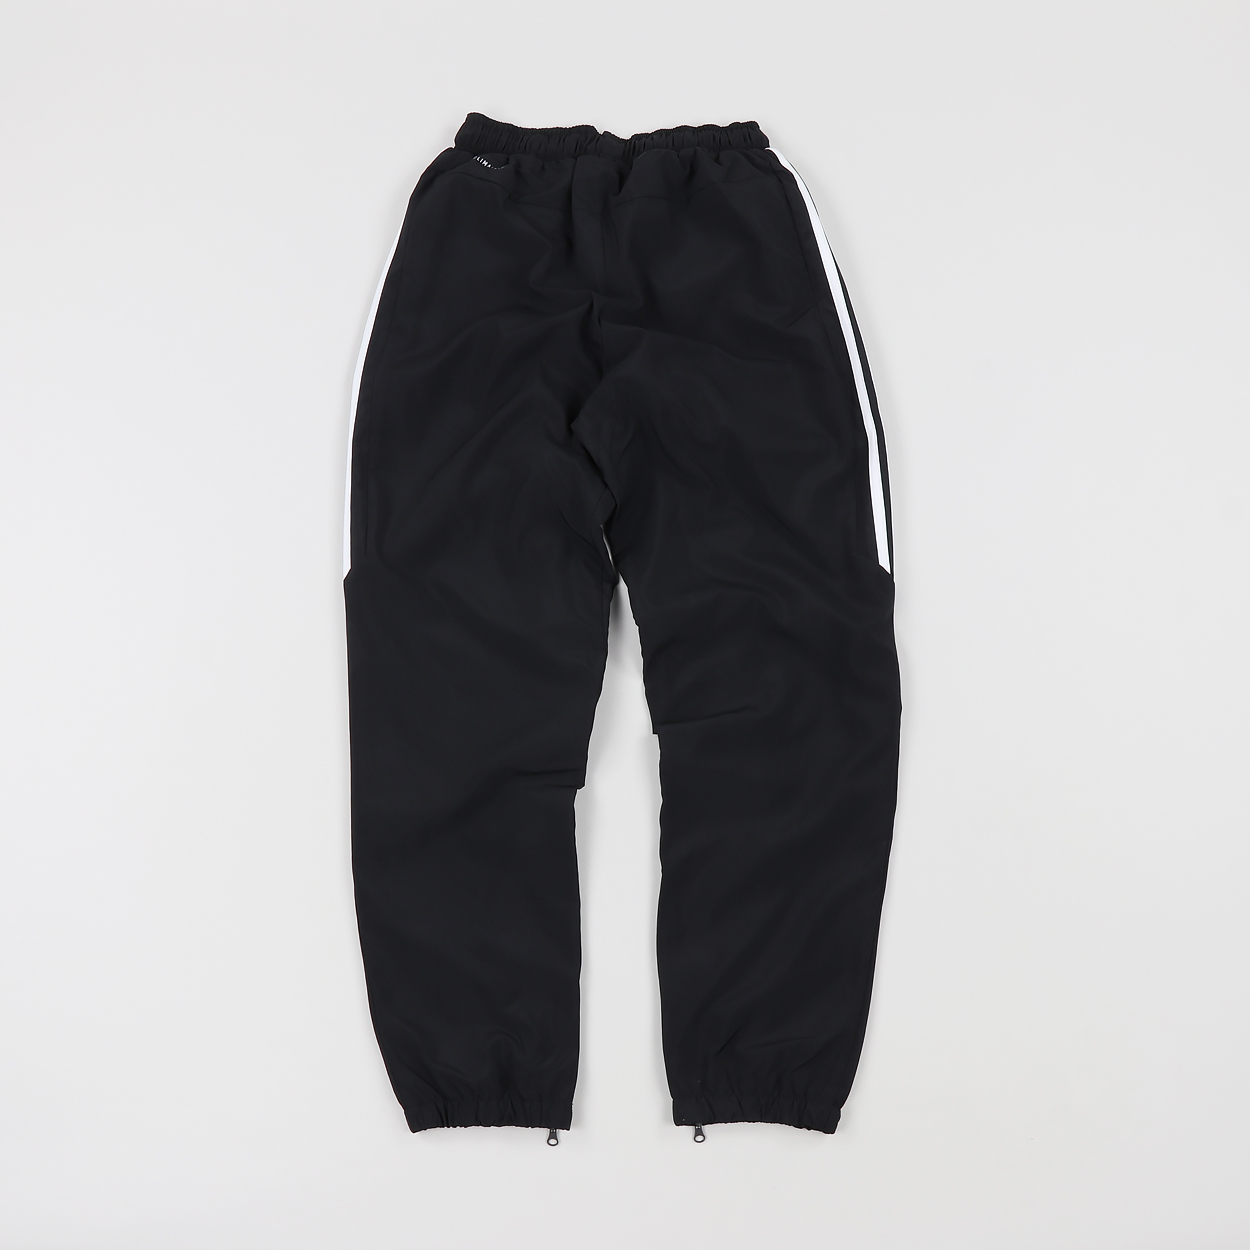 Adidas Classic Polyester Wind Tracksuit Pants Black White £36.00